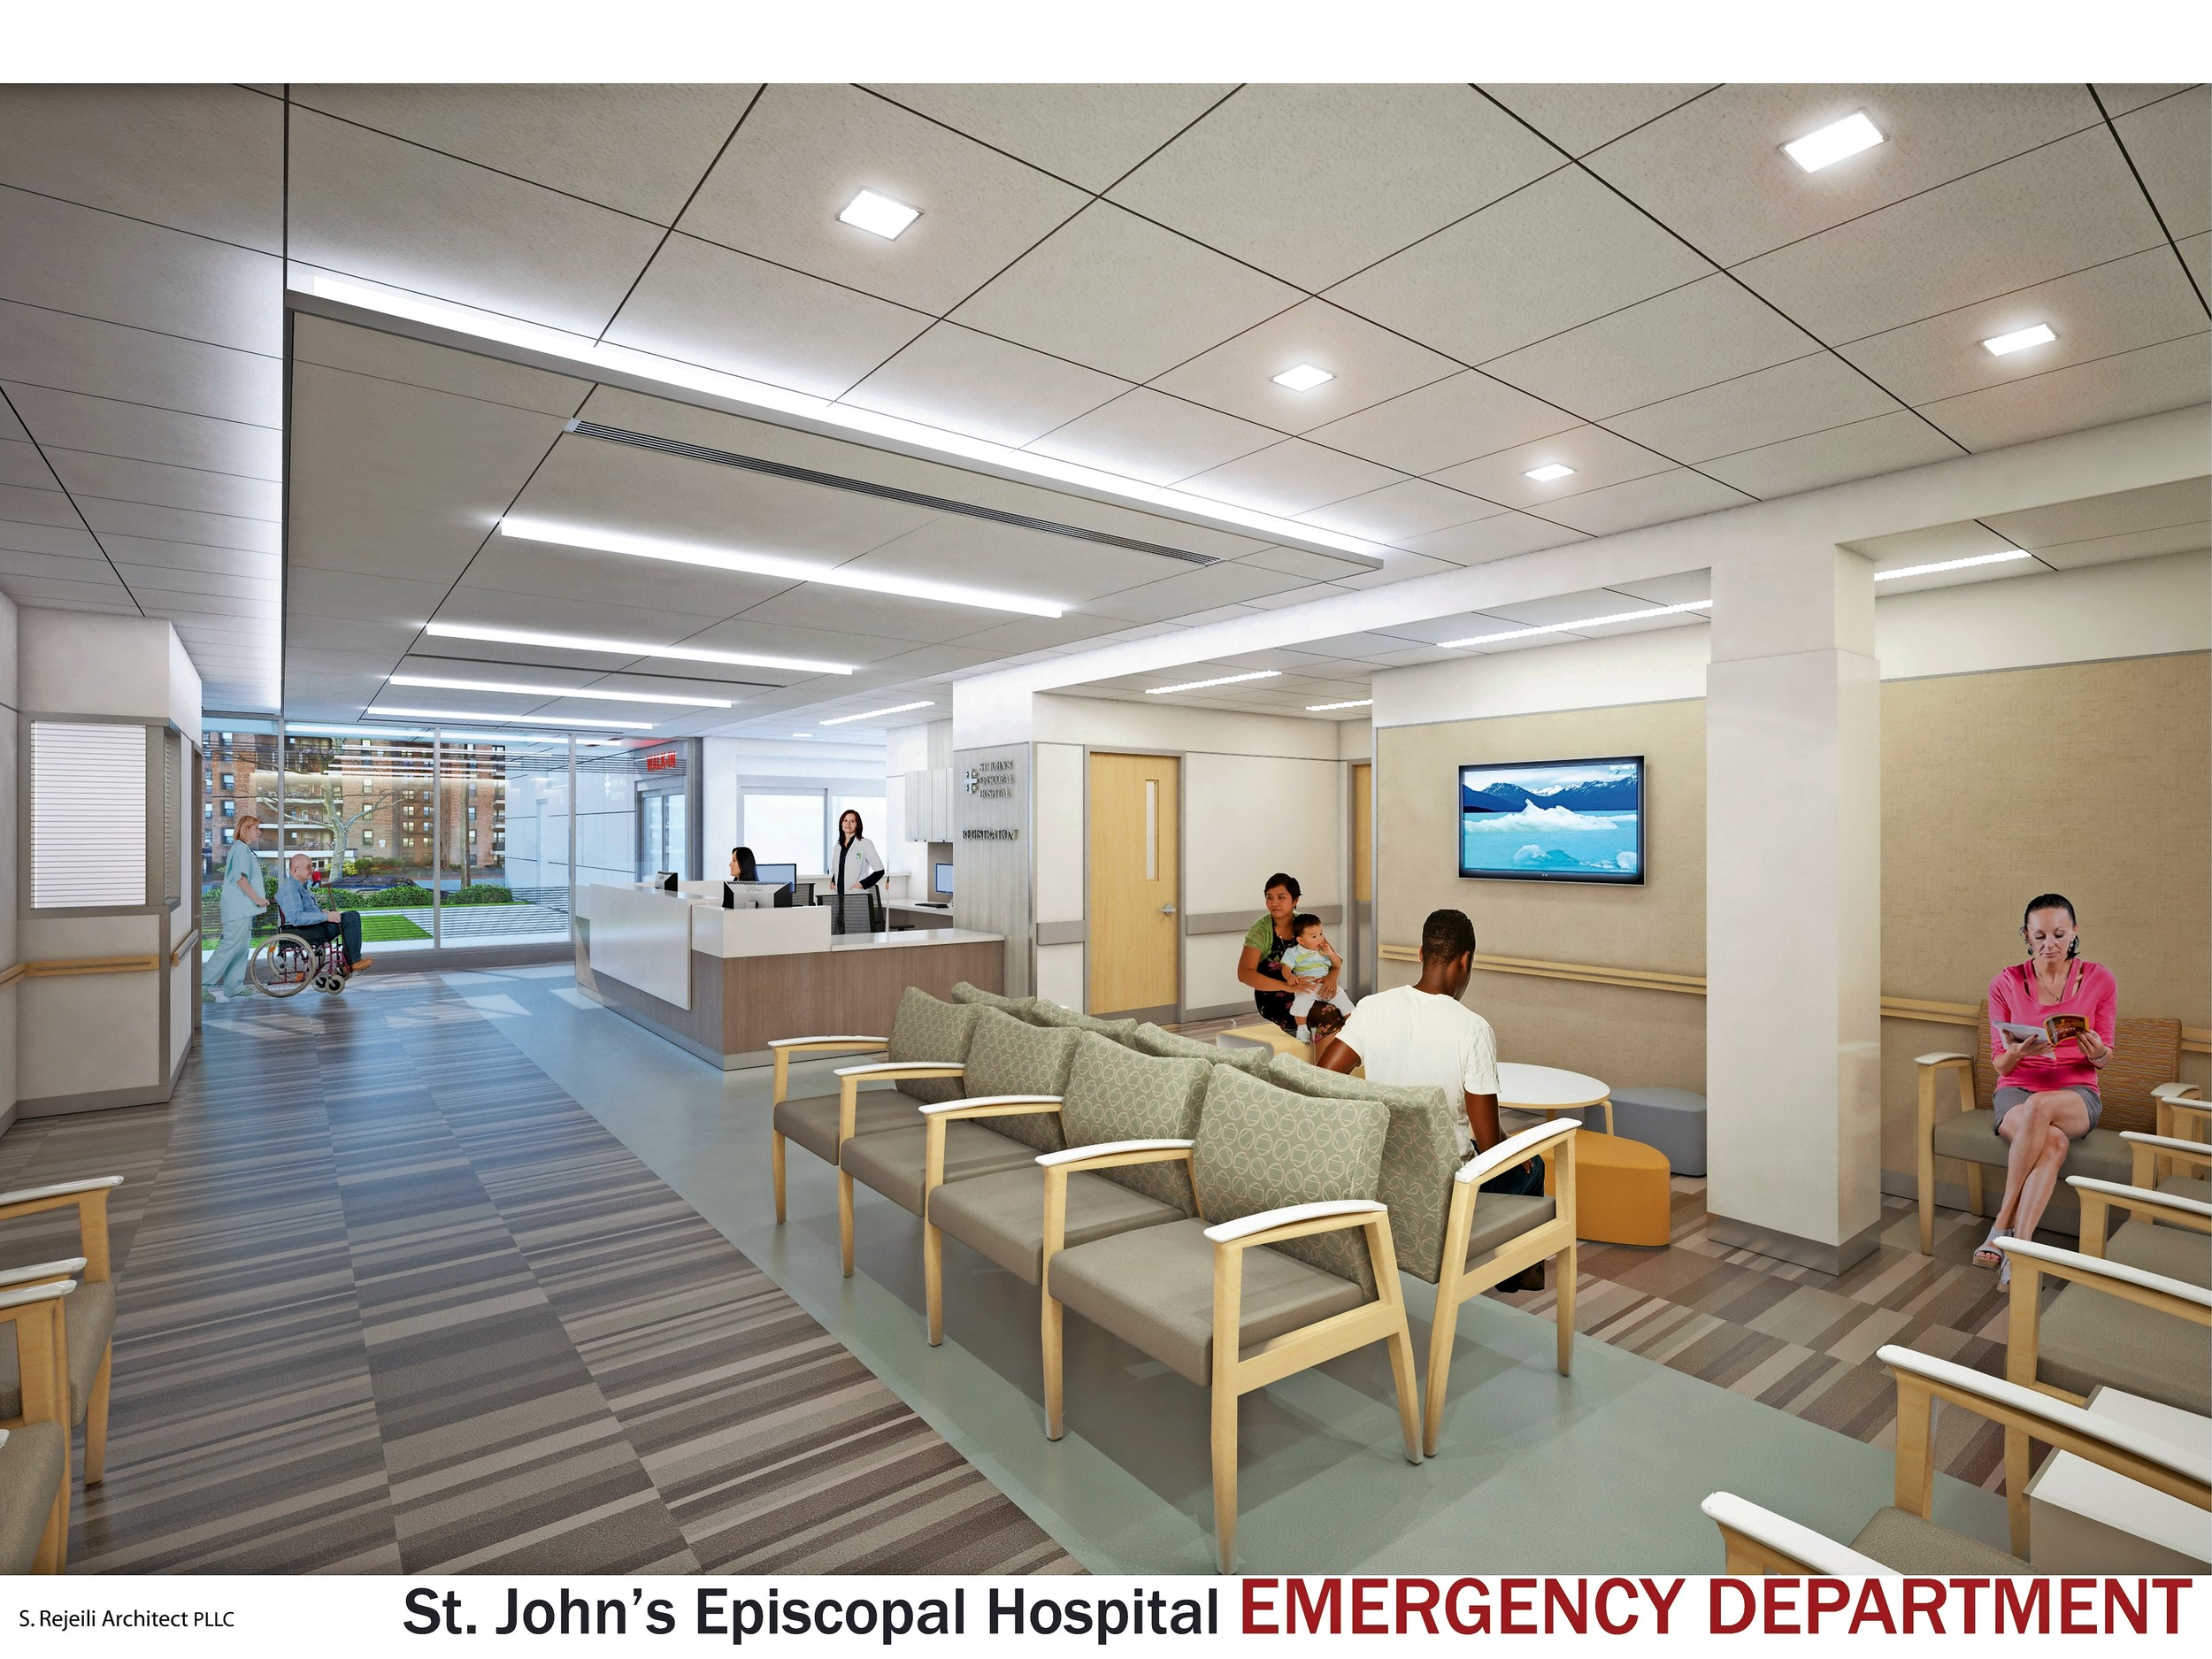 An architect's rendering of the renovated emergency department waiting area.